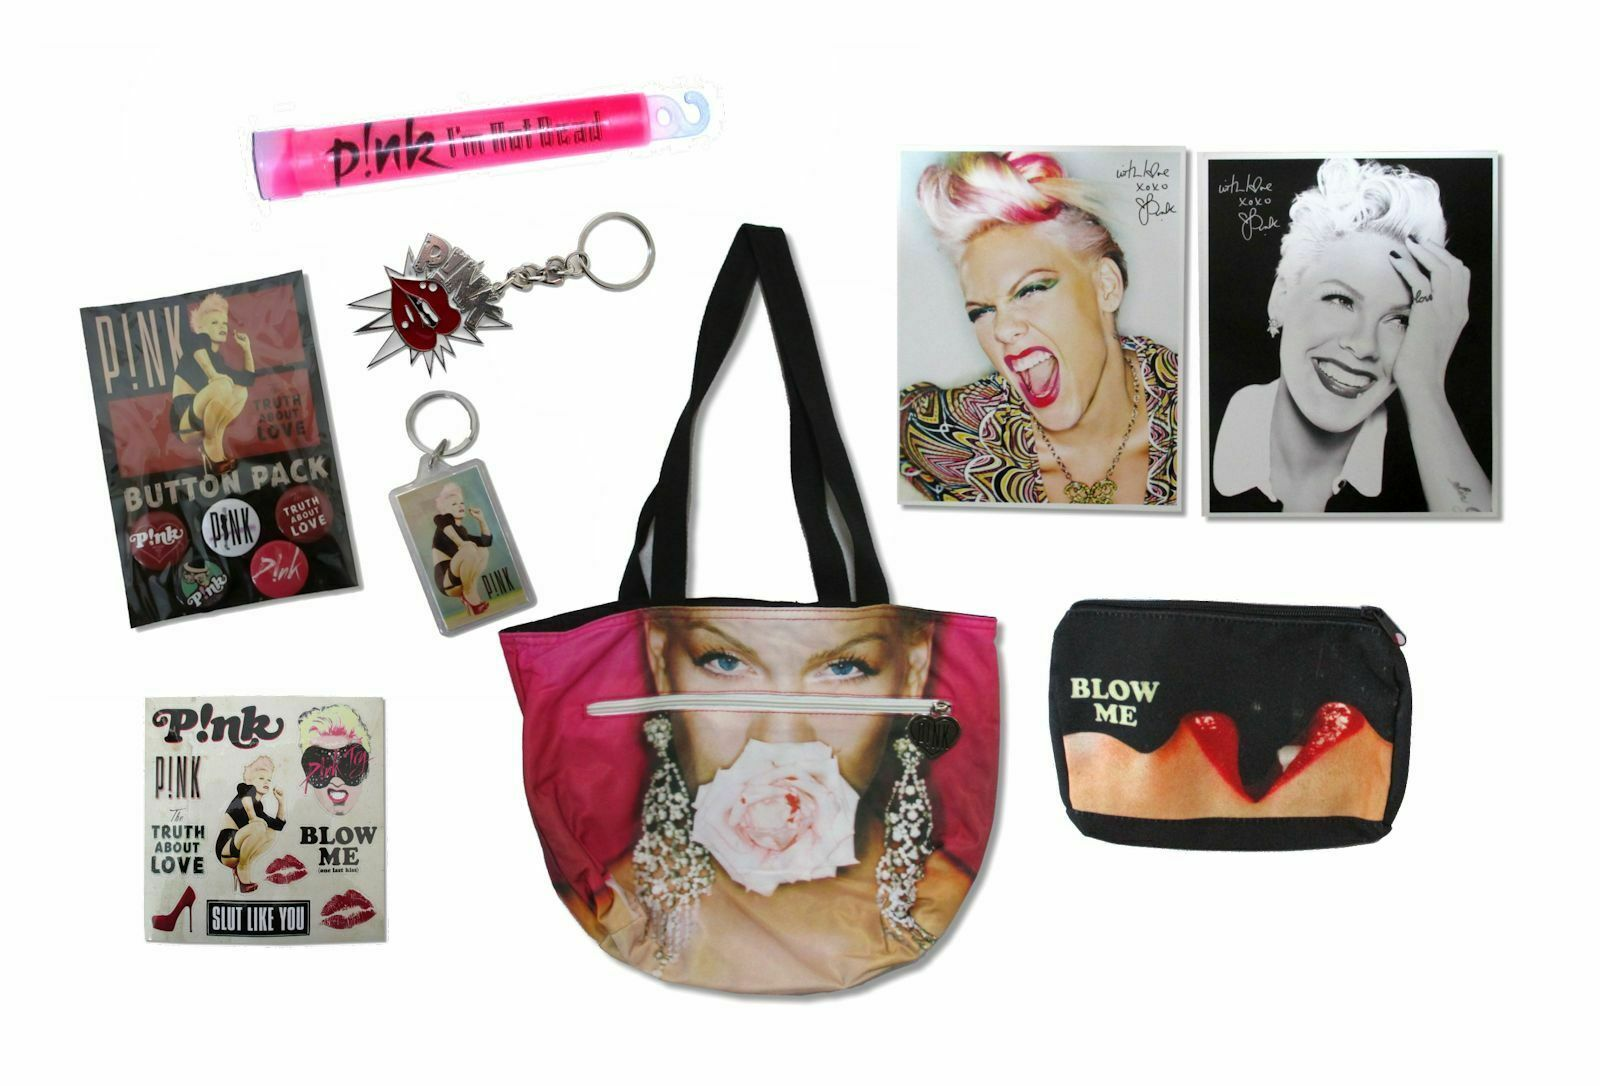 P!NK Pink The Truth About Love Super Fan 9 Item Collectible Gift Set